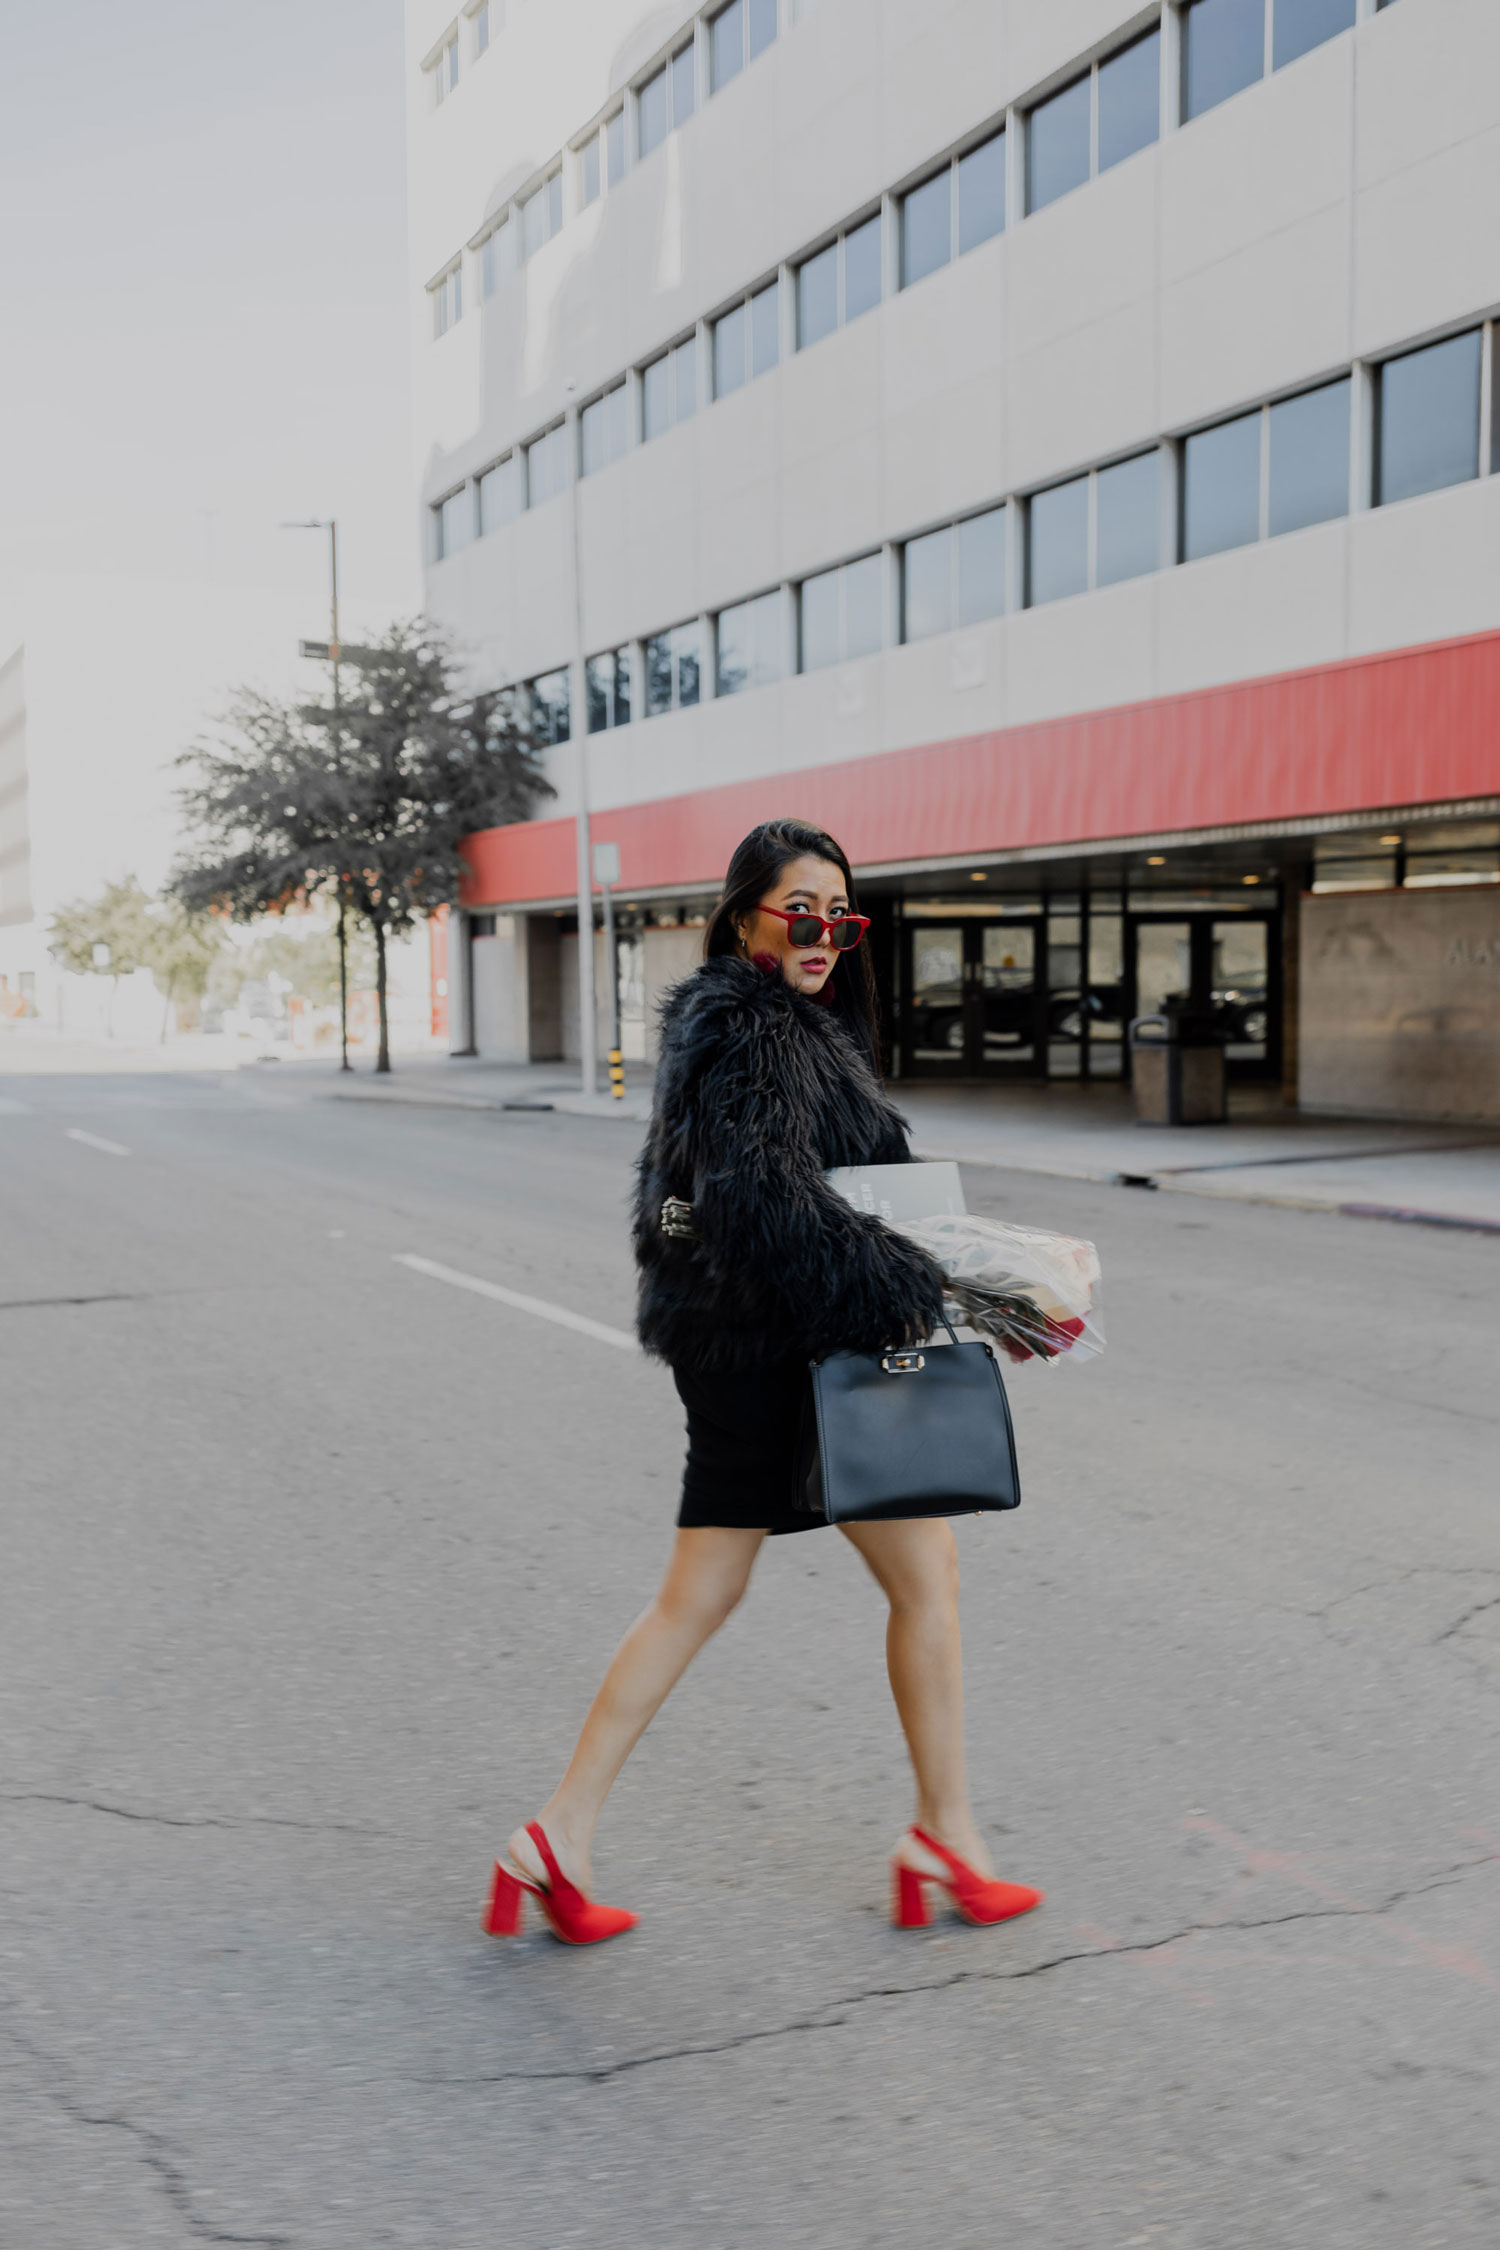 Last Minute Holiday Outfit | Faux Fur Coat #GoodVibesGifting Day 5_12-21-2018_Molly Larsen IG @thevibescloset_allaboutgoodvibes.com